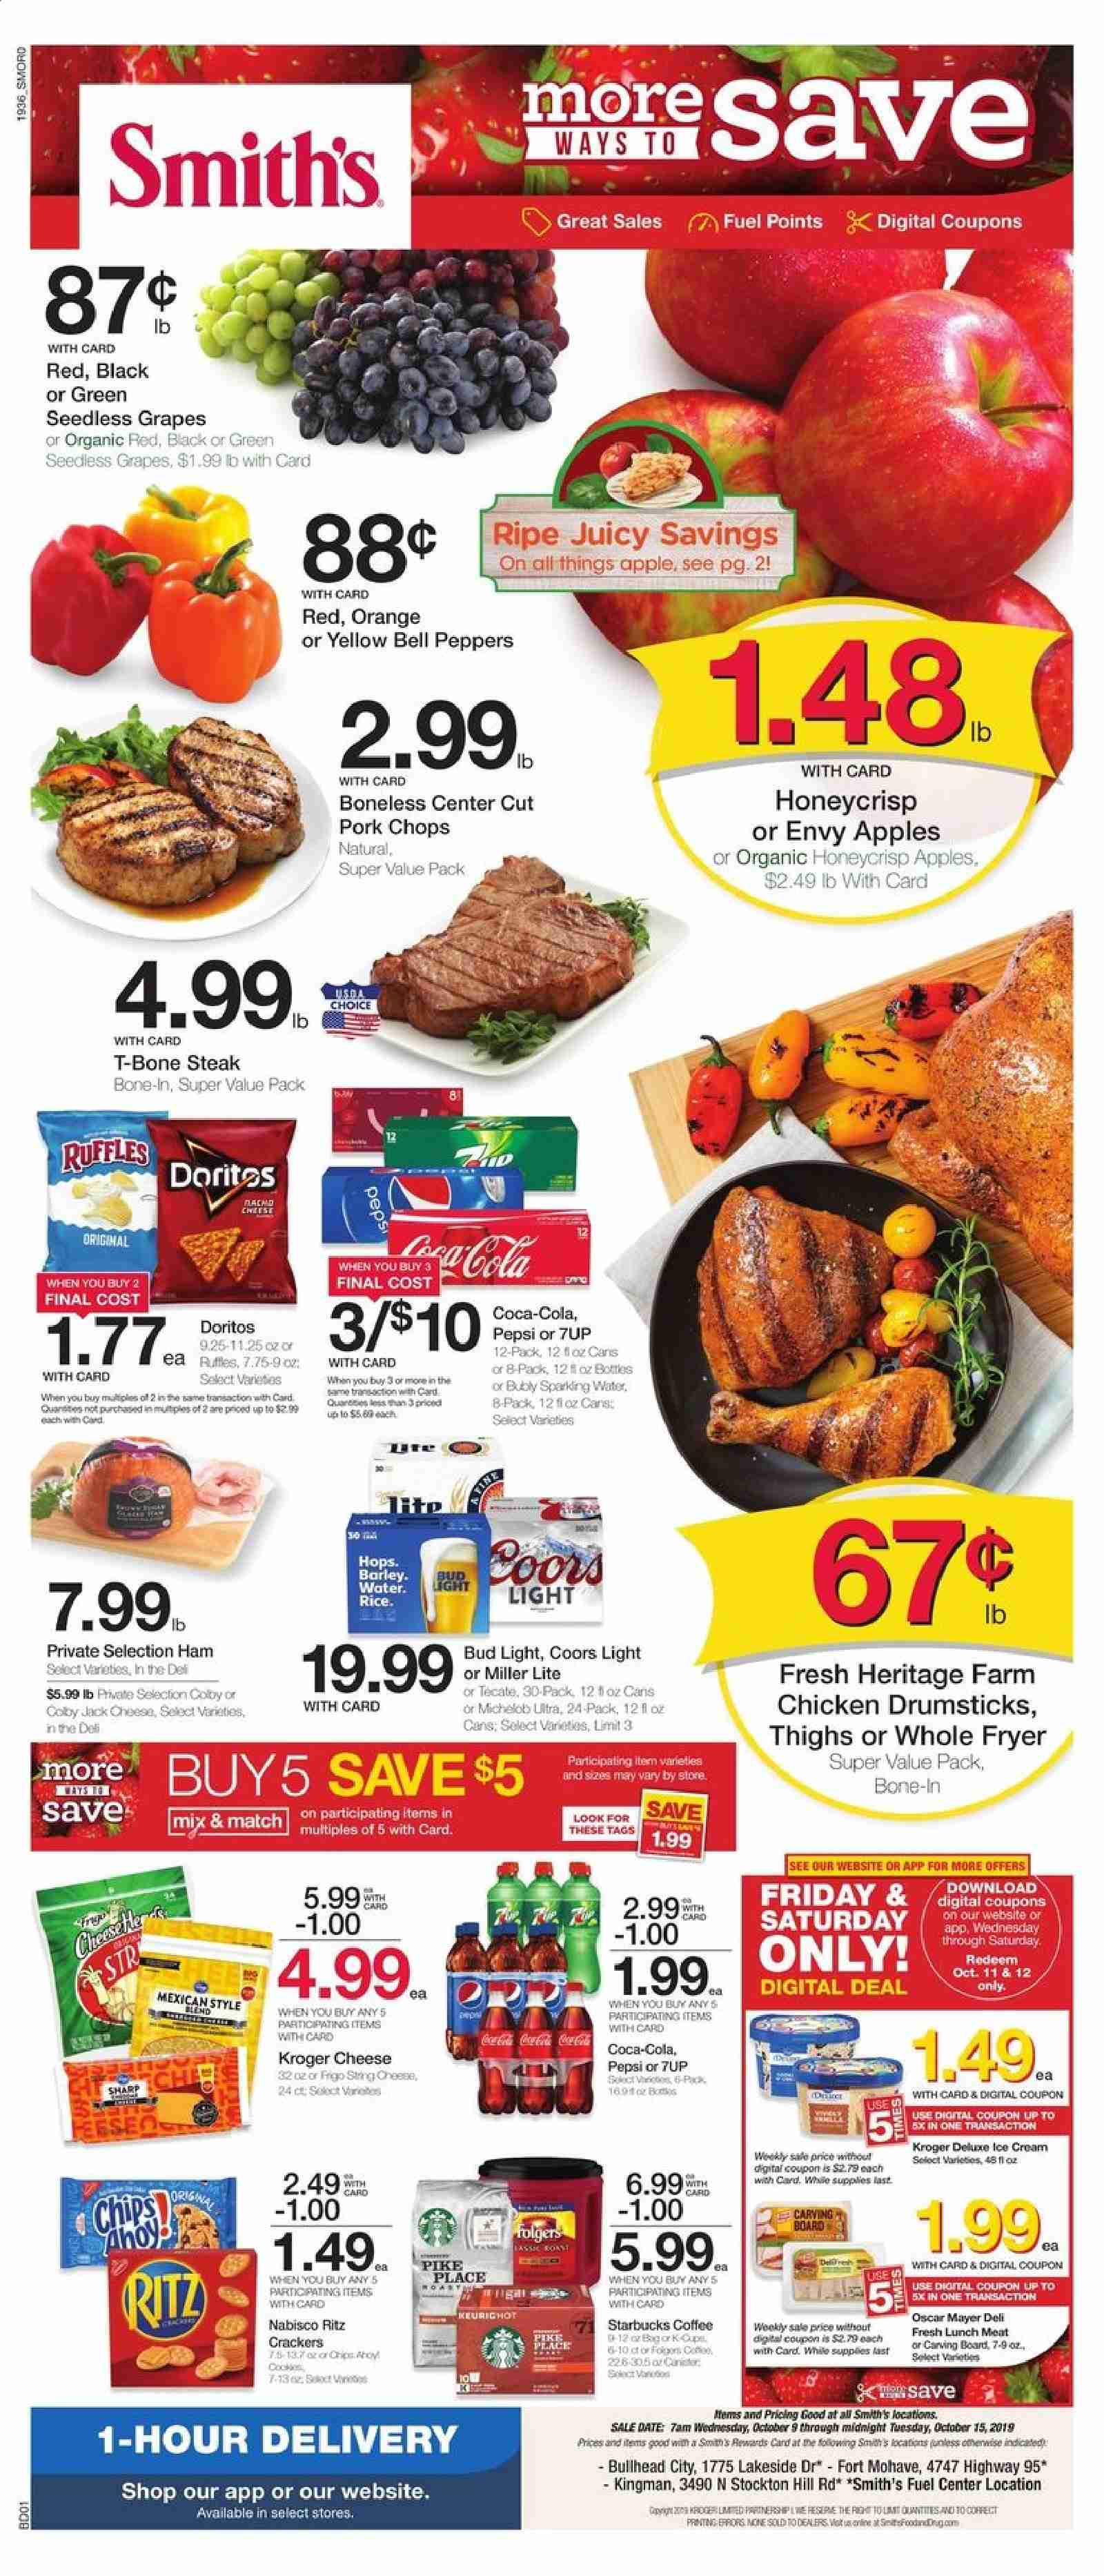 Smith's Flyer  - 10.09.2019 - 10.15.2019. Page 1.